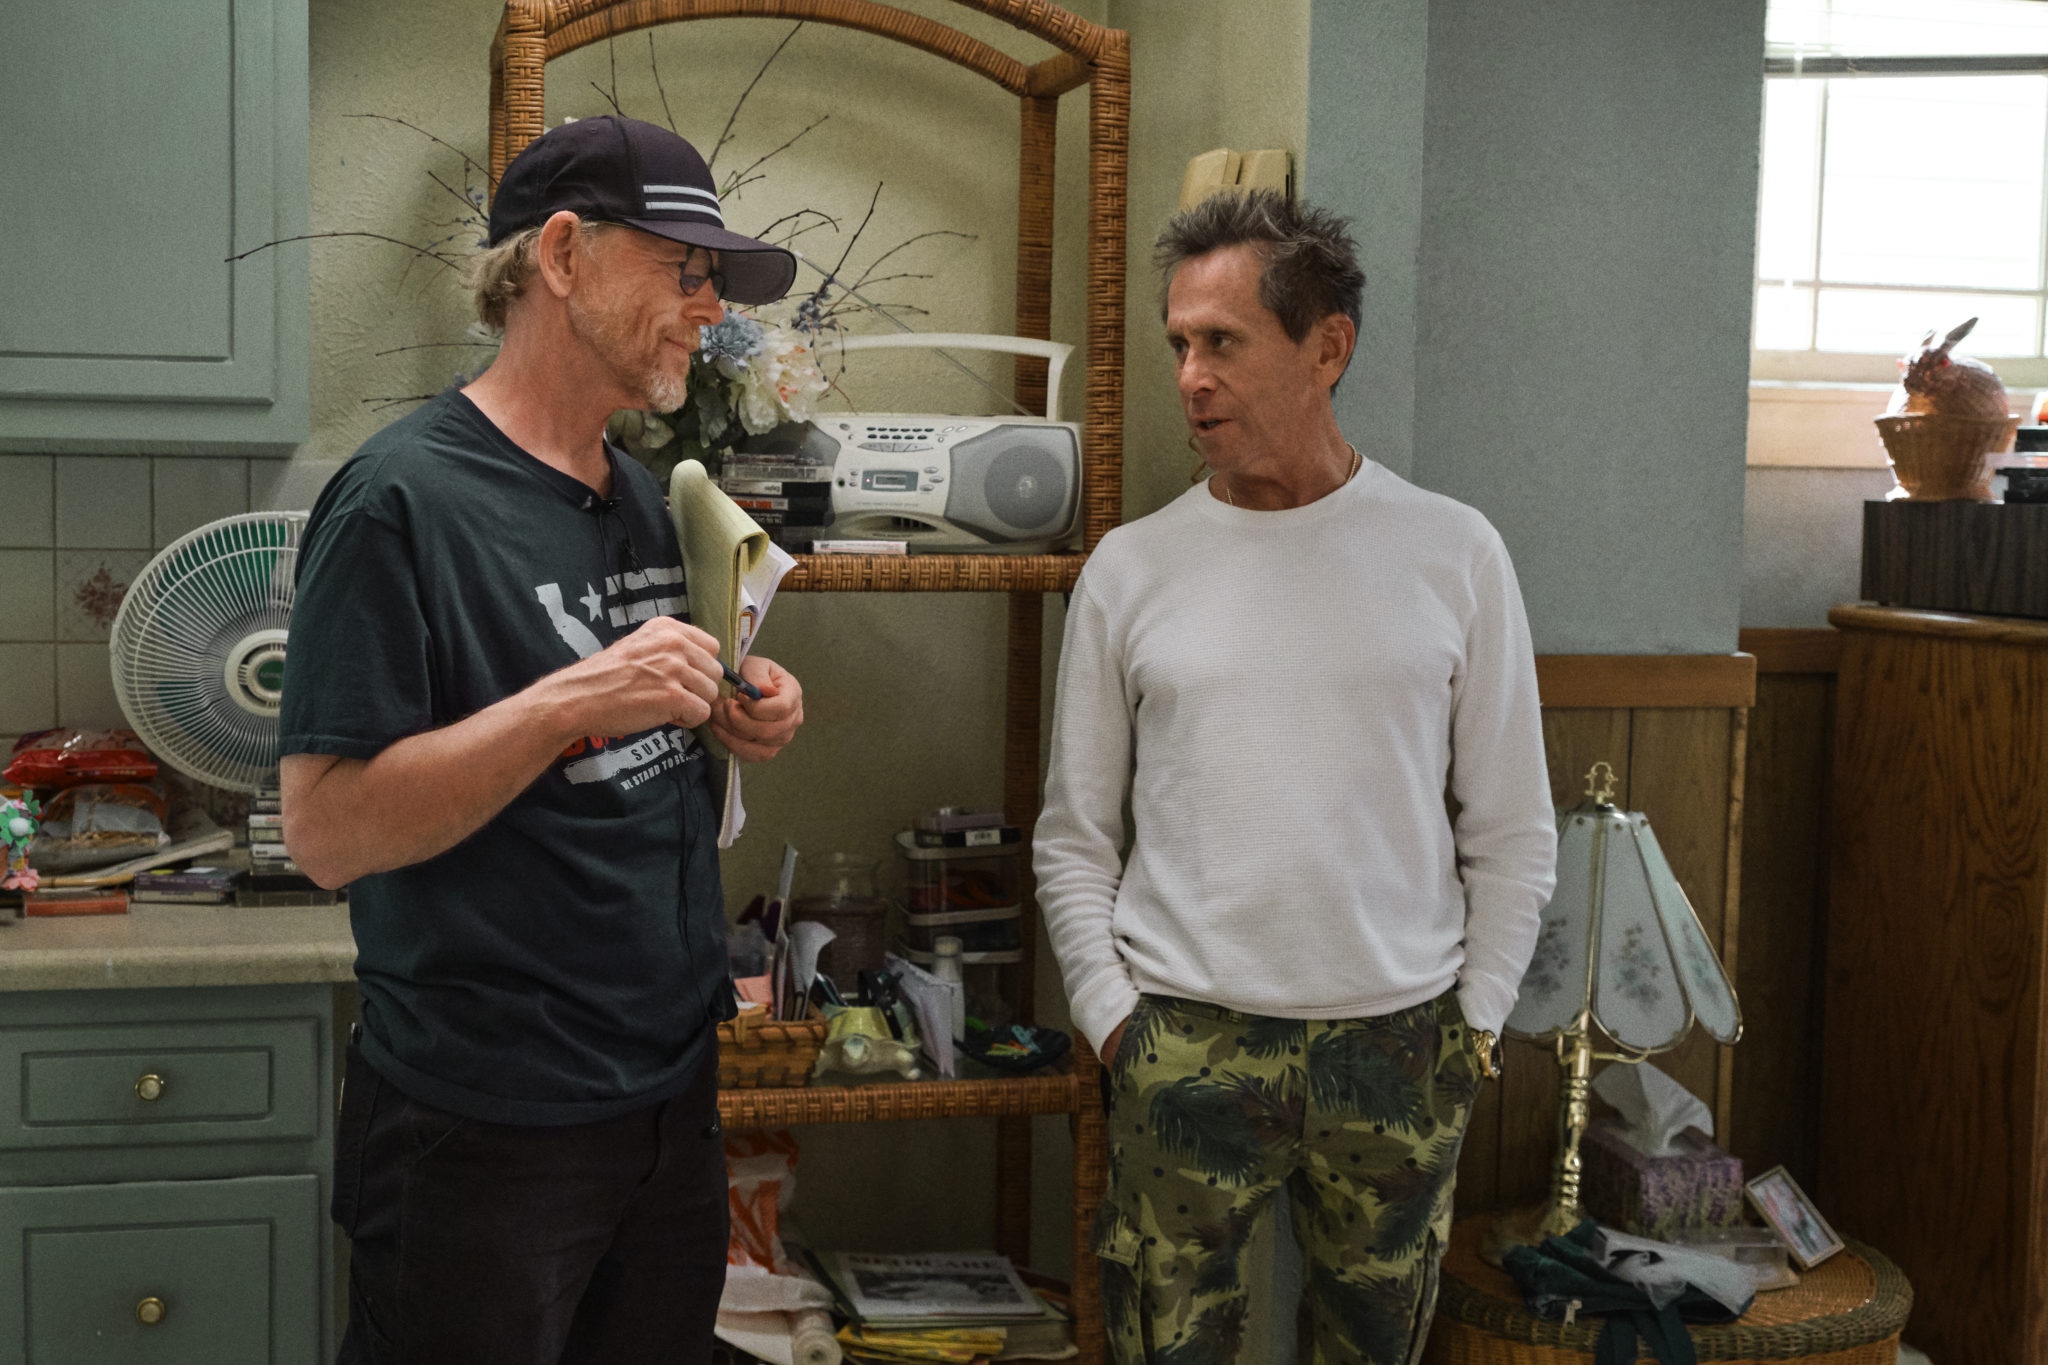 HILLBILLY ELEGY/ Une Ode américaine (2020) Director Ron Howard and Producer Brian Grazer on the set of Hillbilly Elegy.